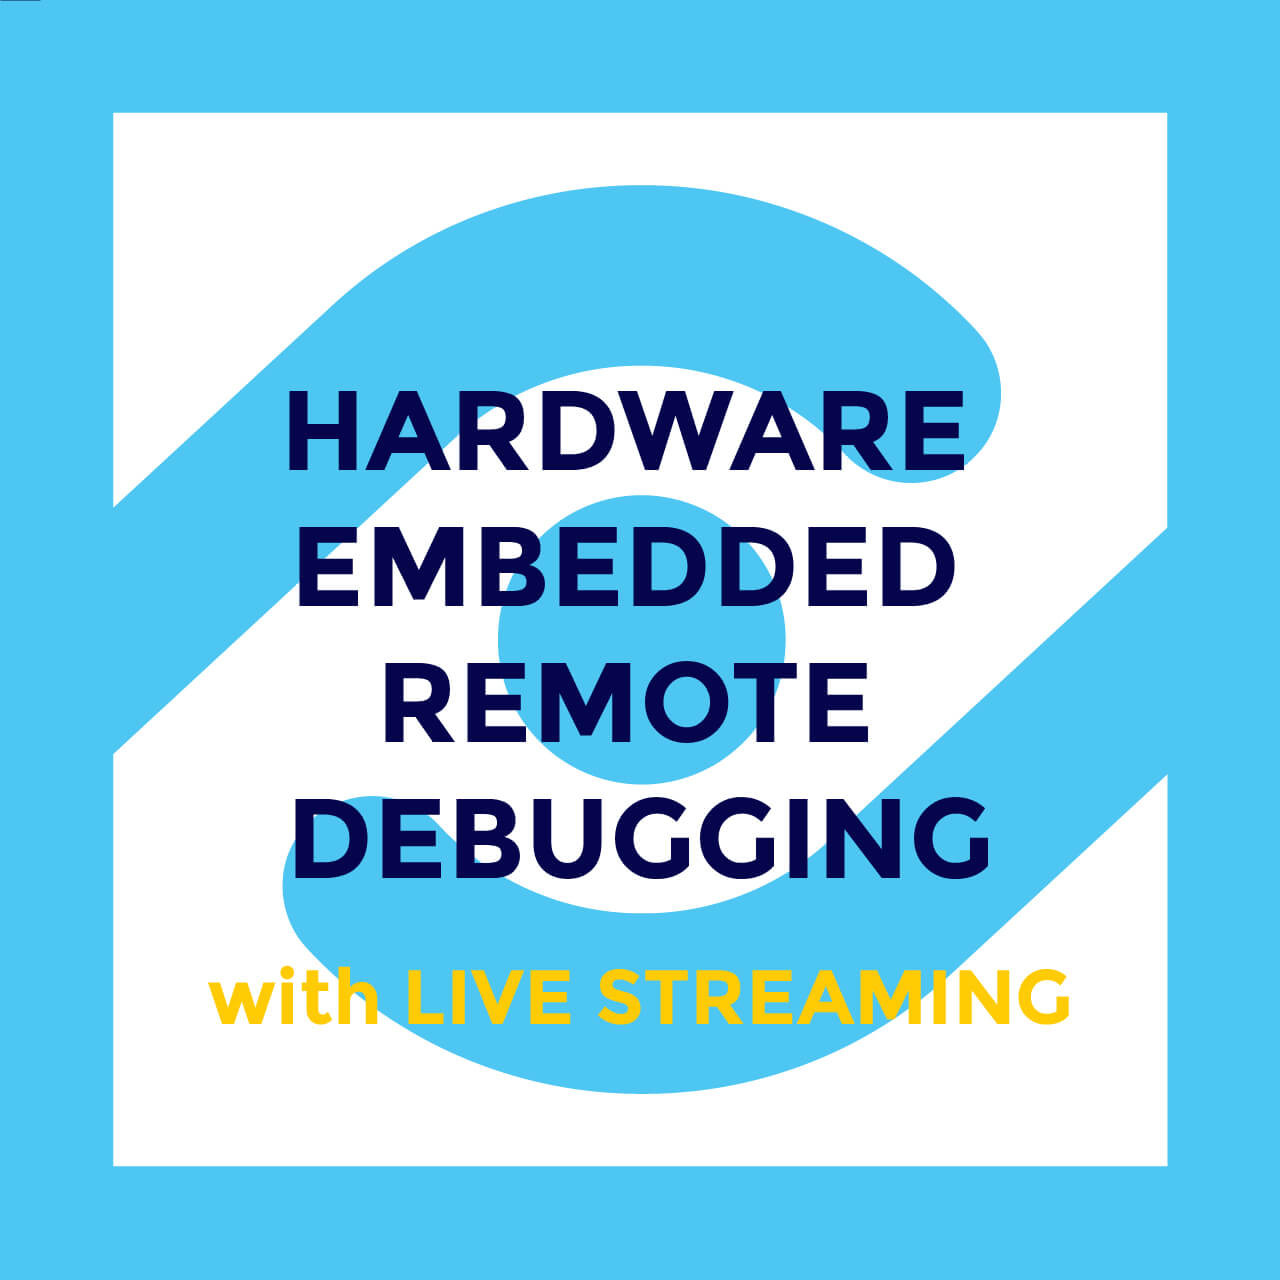 Planet Debug Hardware Embedded Remote Debugging